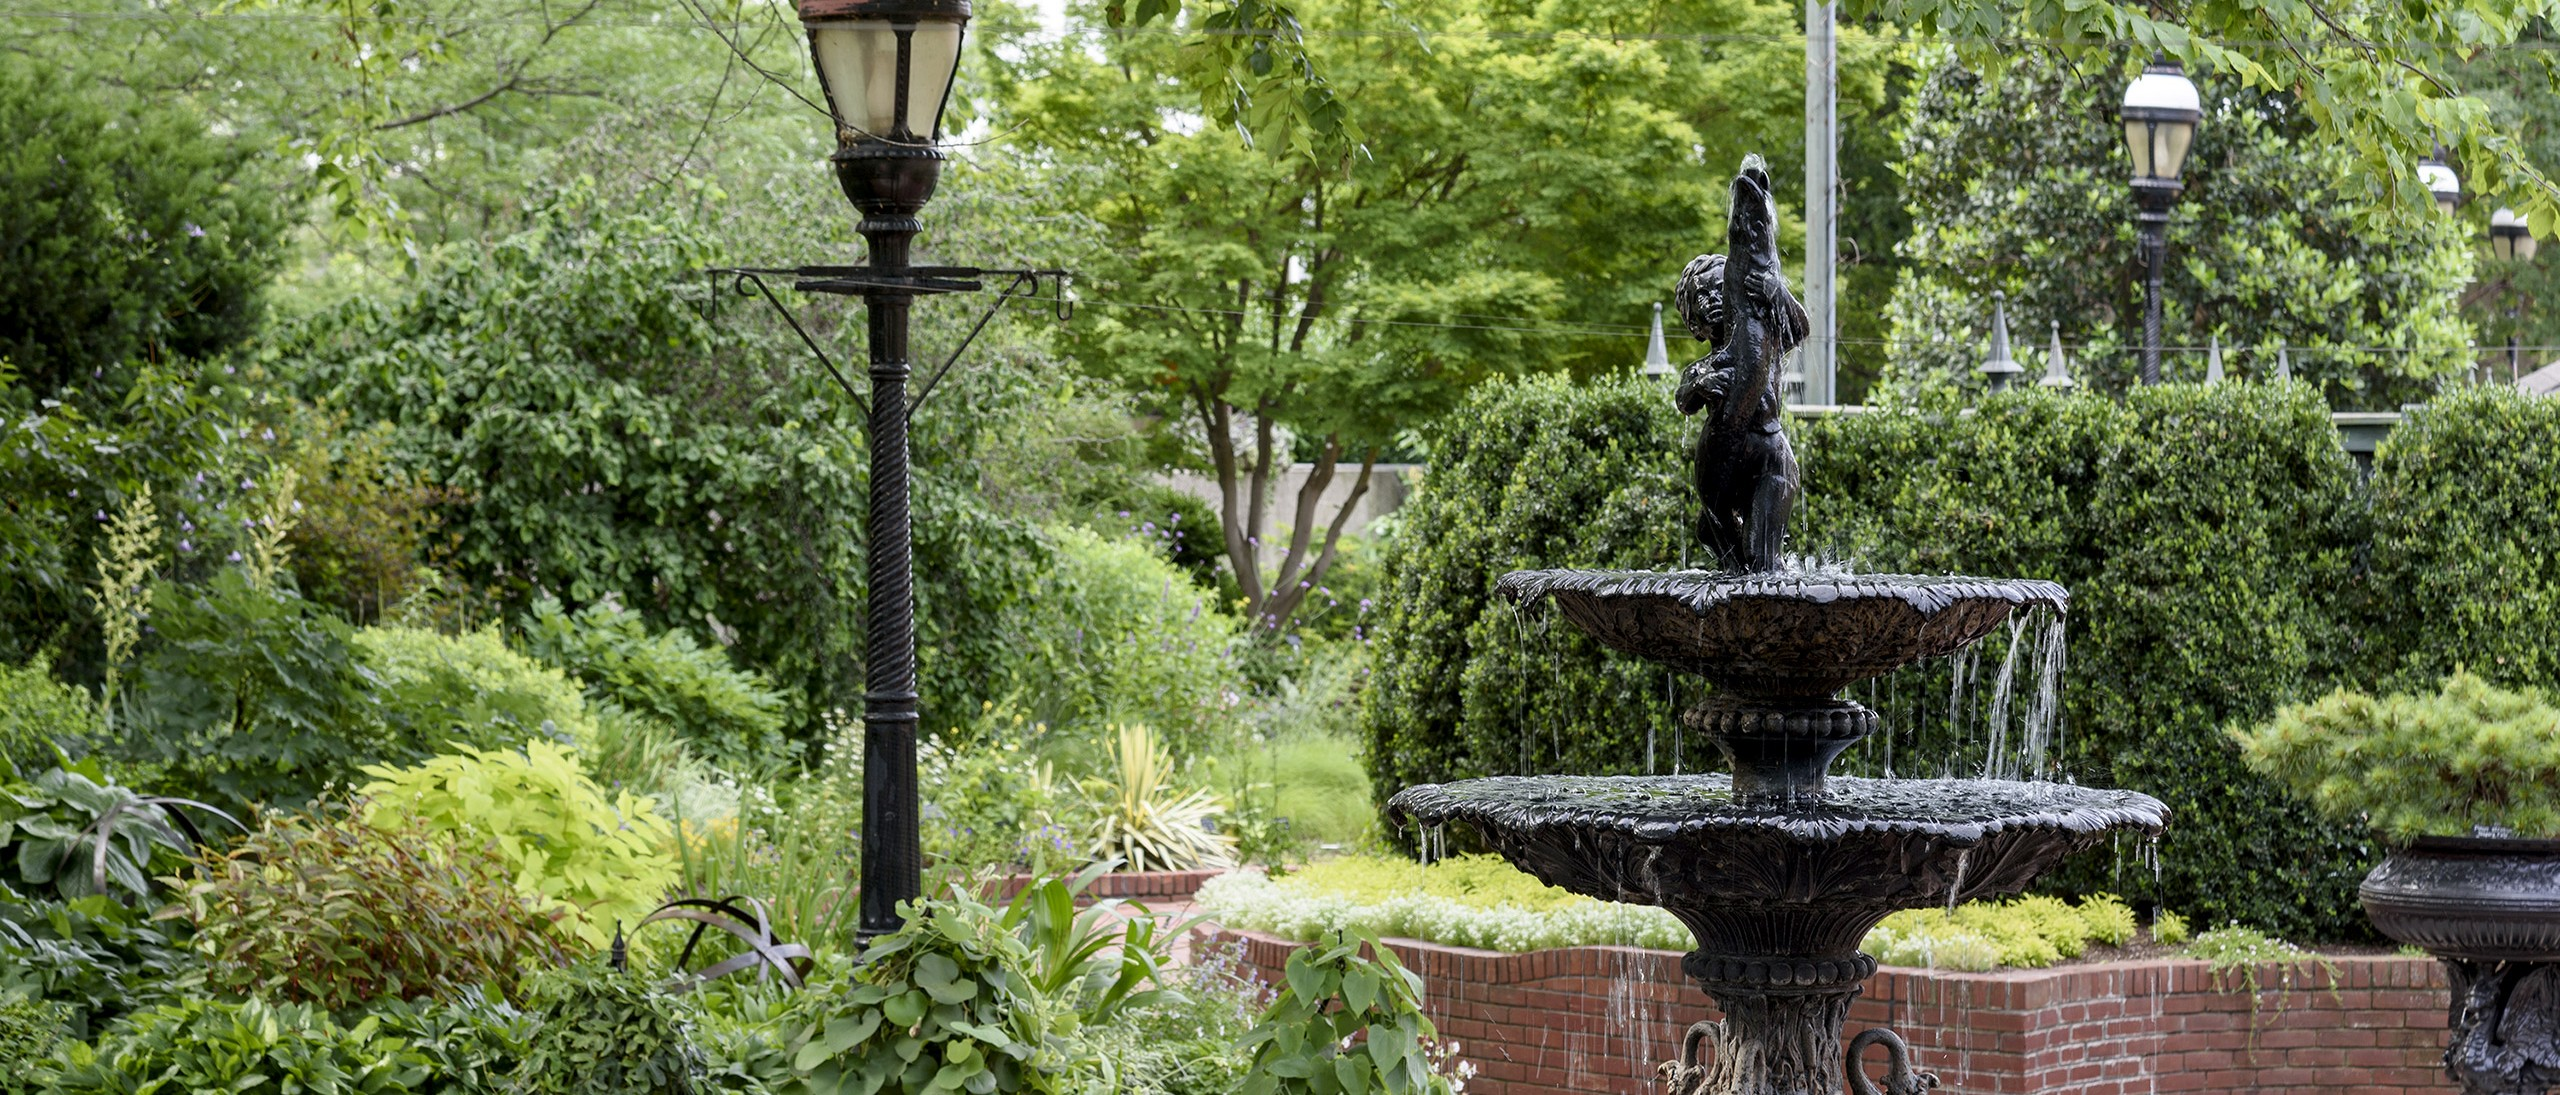 Cast iron three-tiered fountain with bird motif framed by raised brick beds planted with varying shades of green